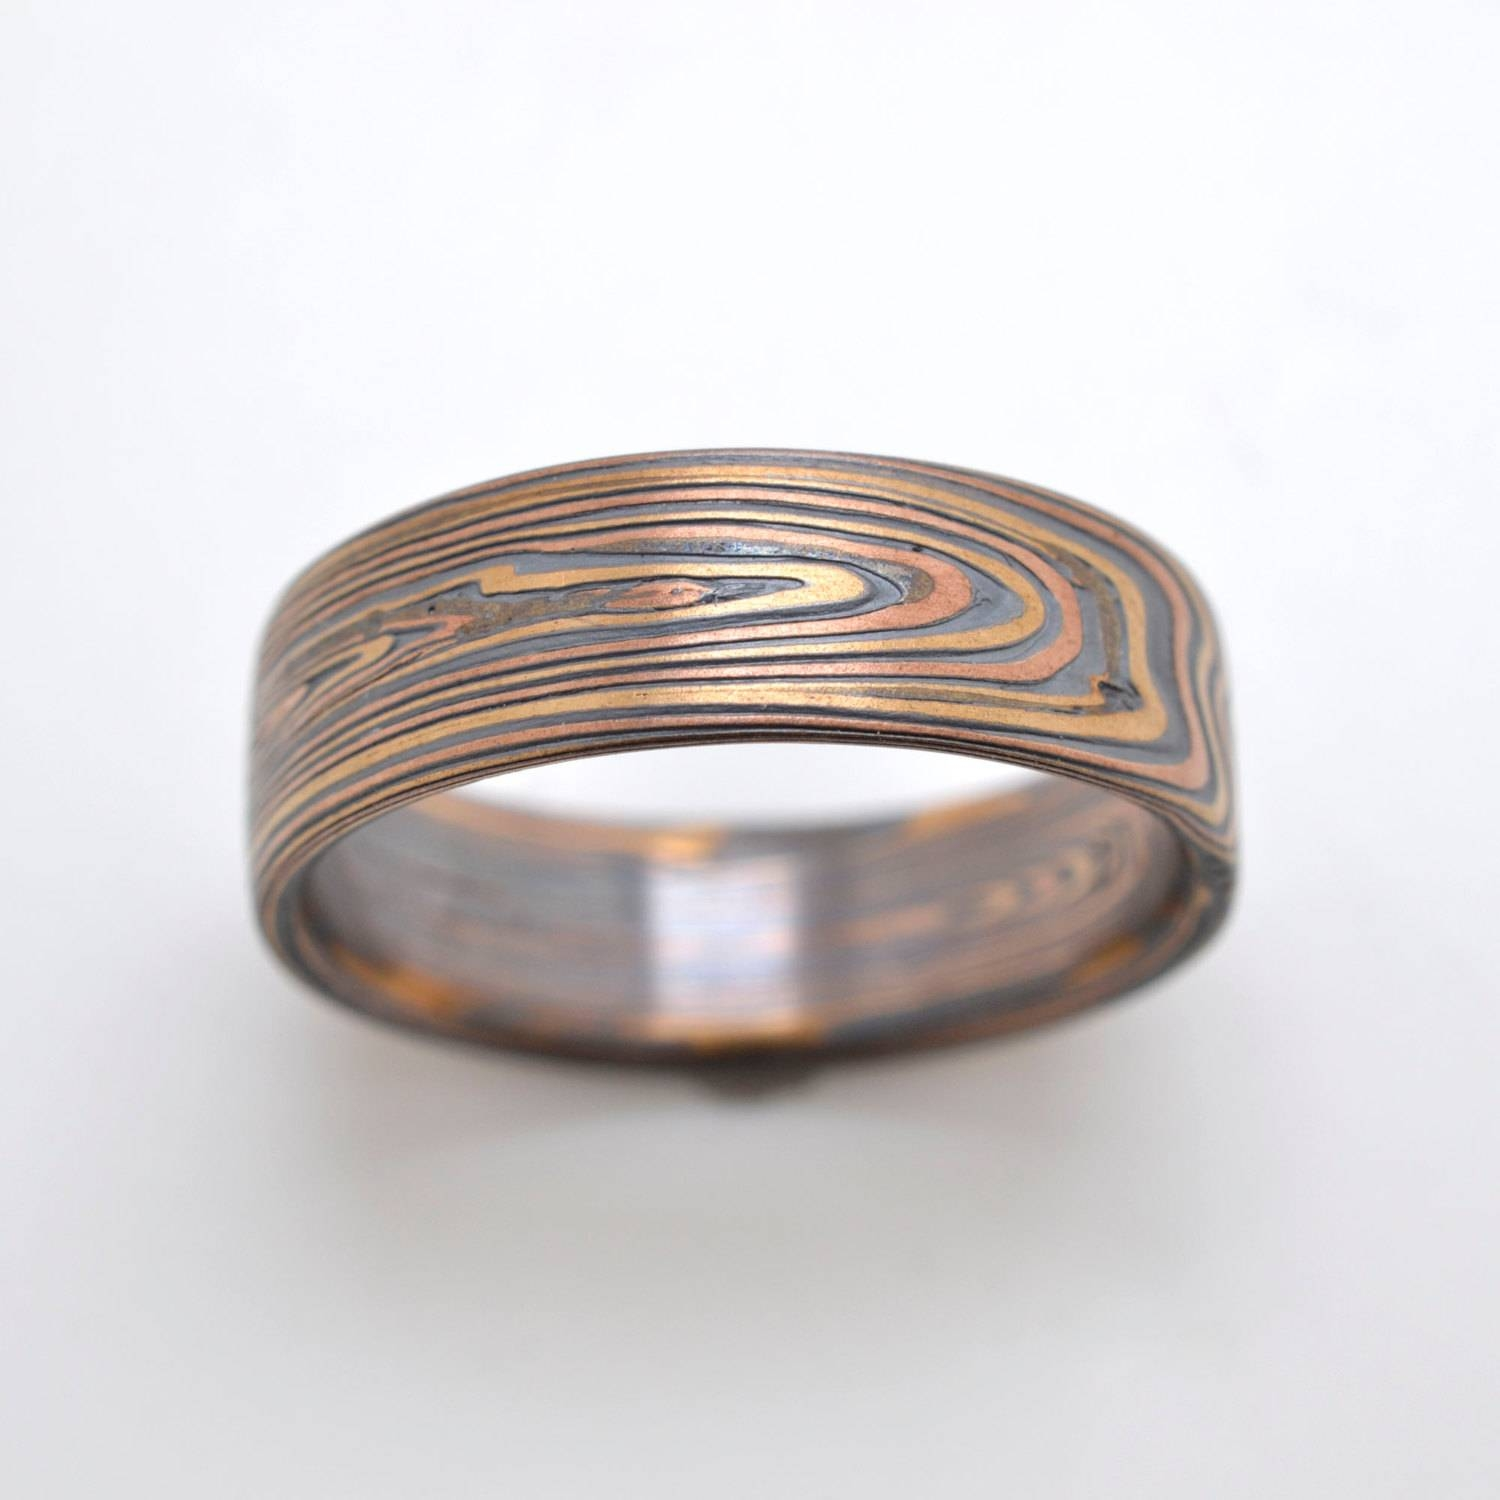 Mokume Vortex Band In Oxidized Flame Intended For Mokume Wedding Bands (View 7 of 15)